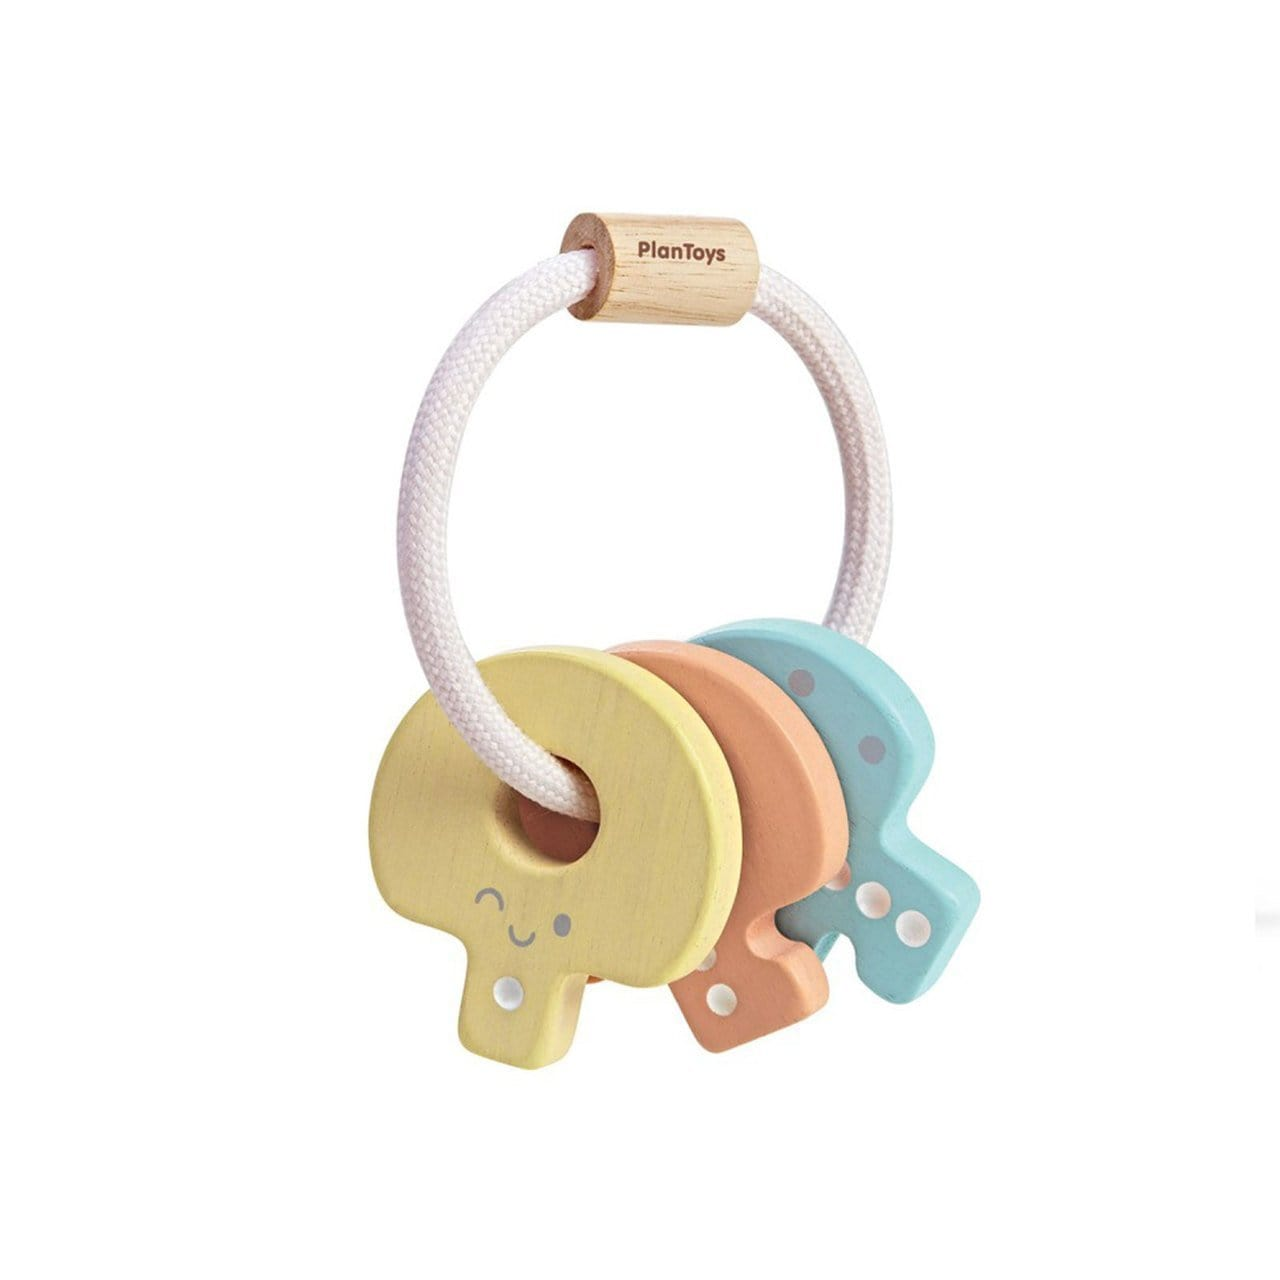 Pastel Plan Toys Wooden Baby Key Rattle (Multiple Variants) - Naked Baby Eco Boutique